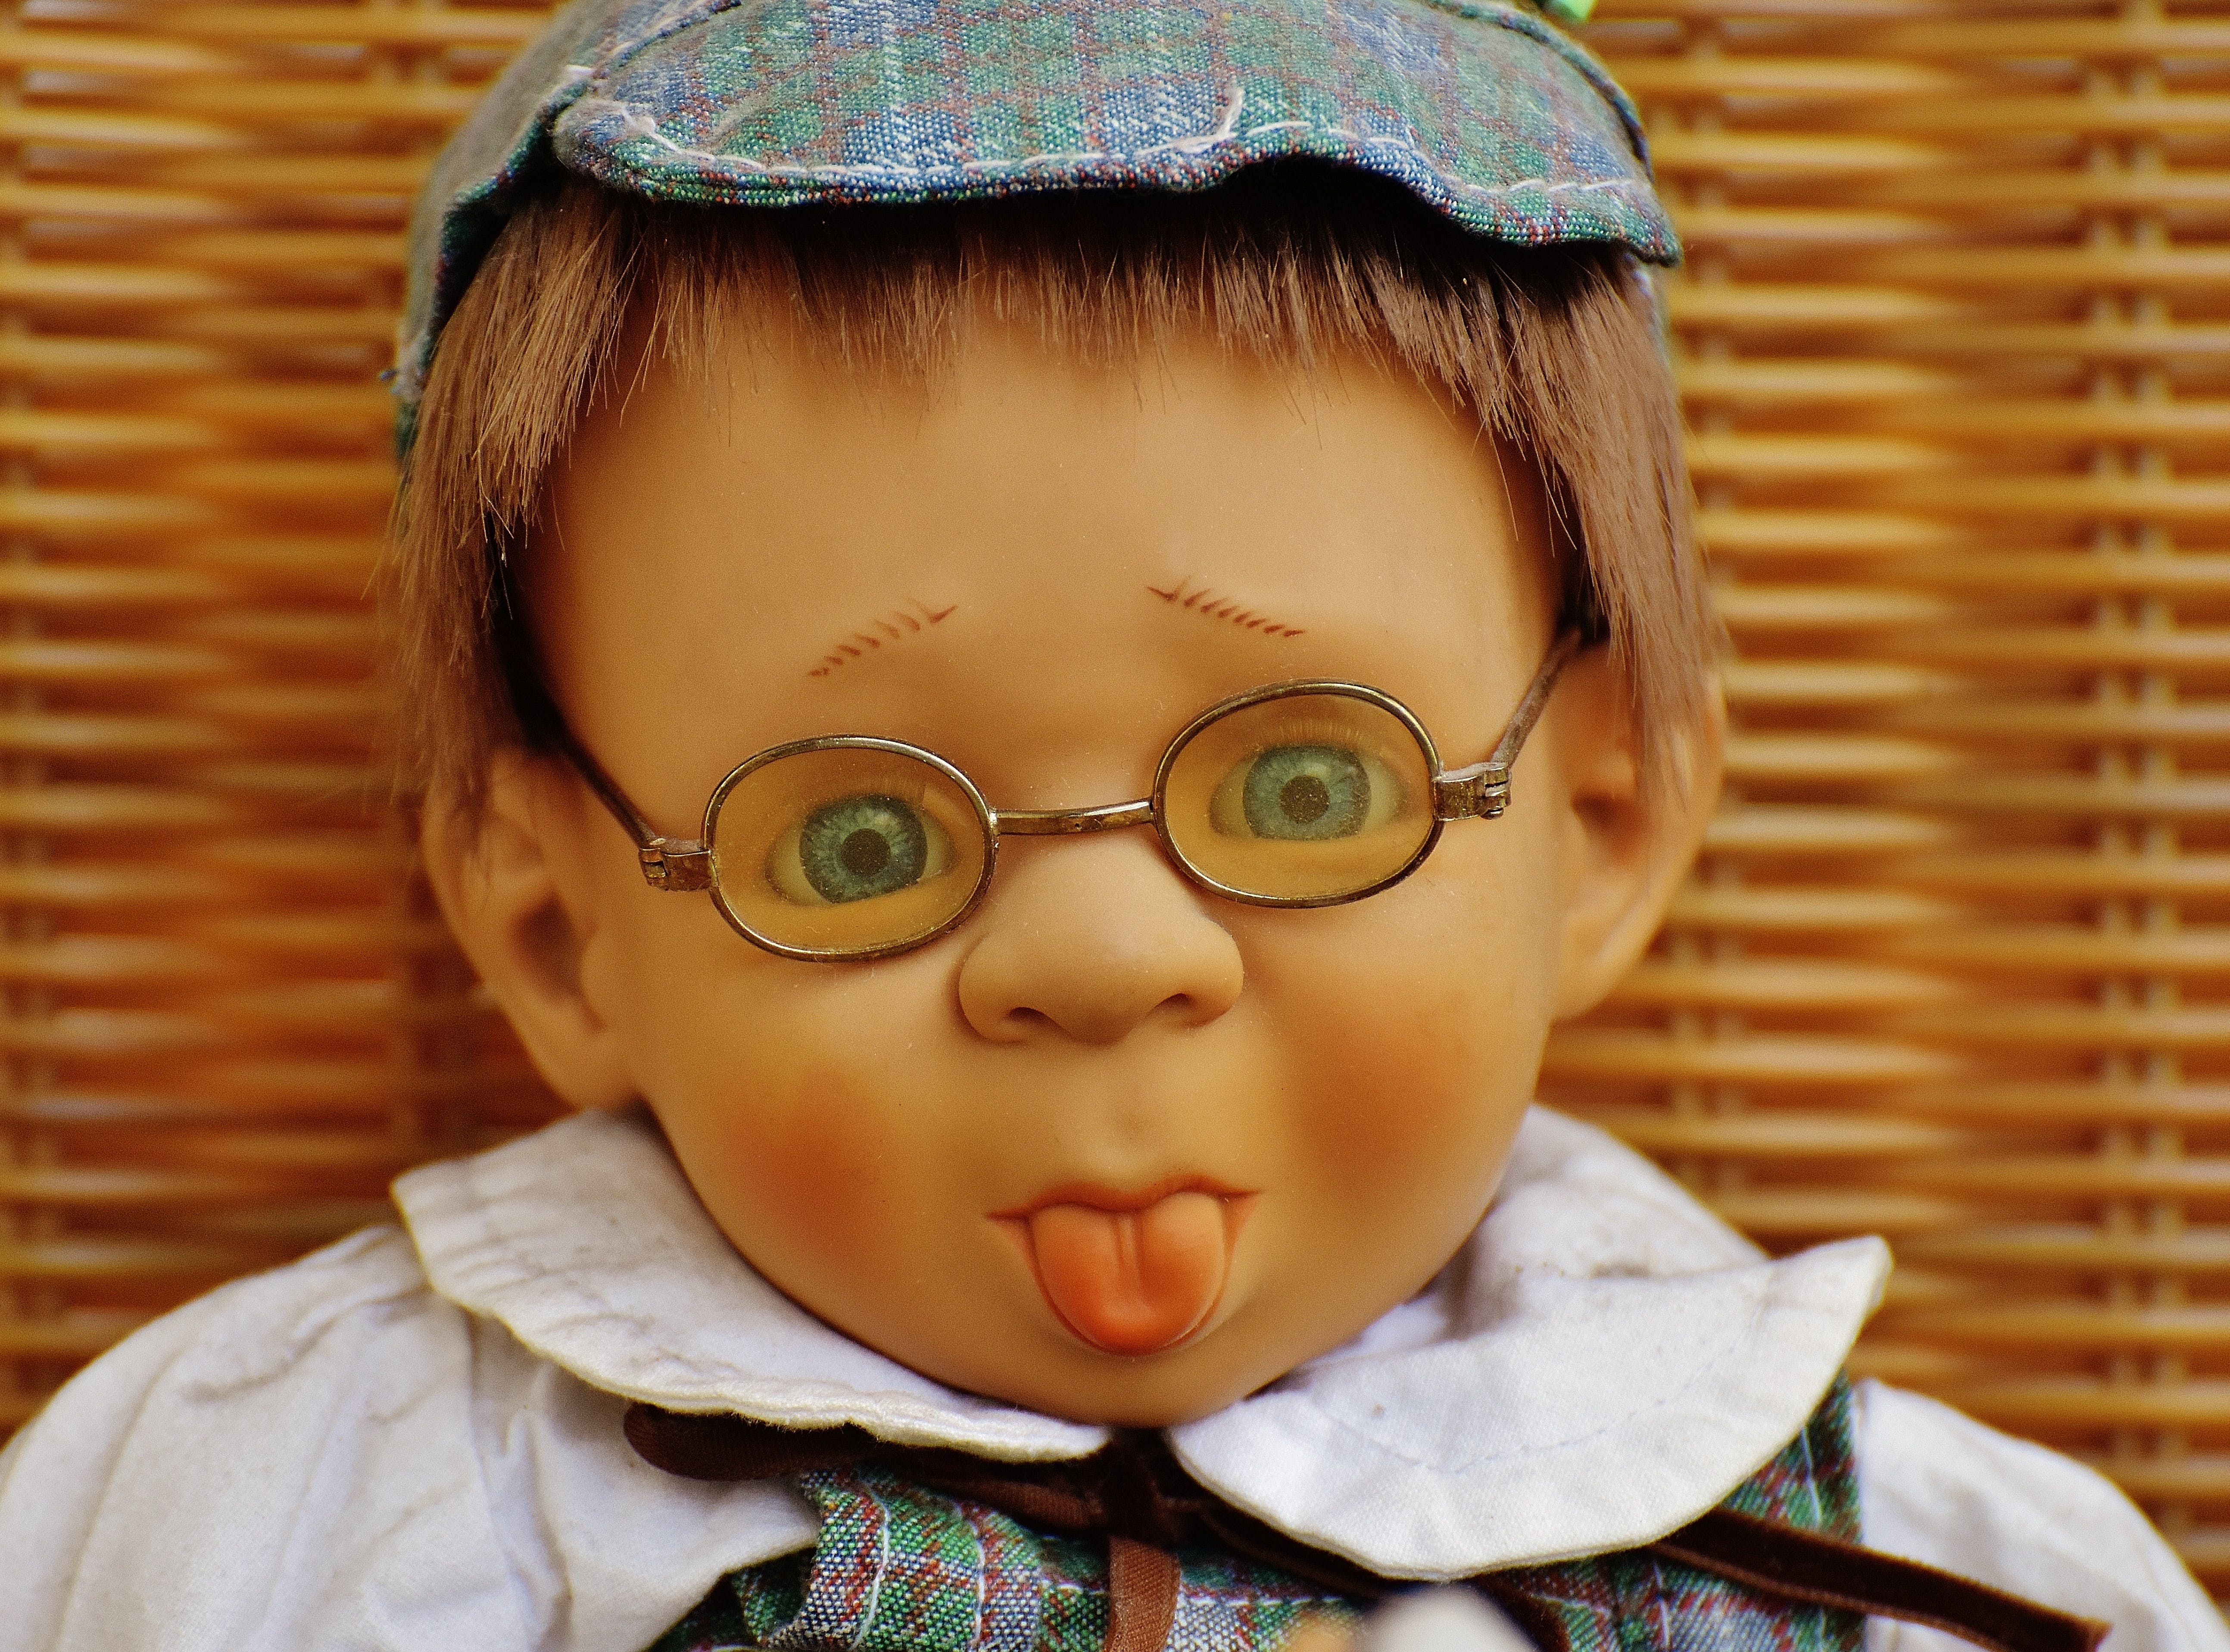 Doll Wearing Eyeglasses